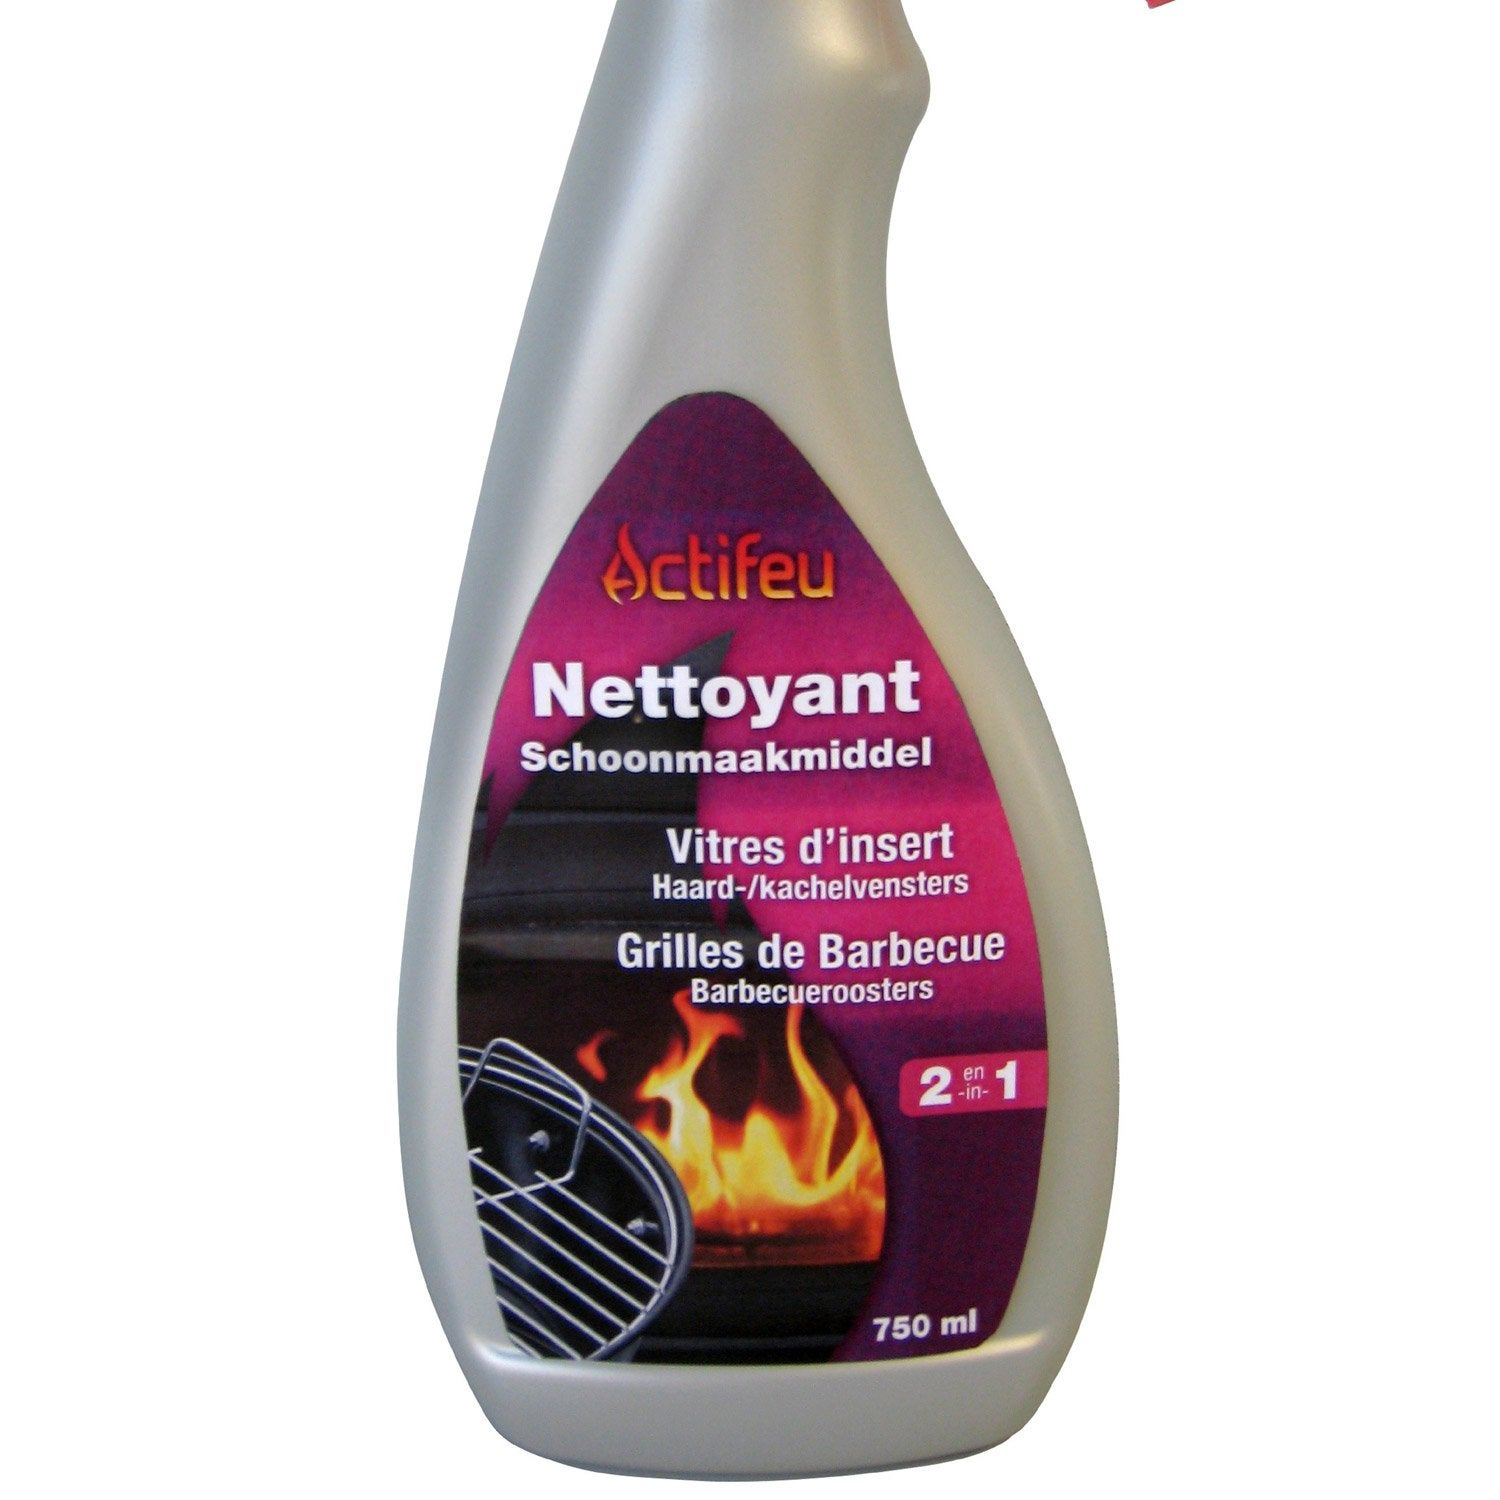 Nettoyant grille barbecue 750ml leroy merlin - Grille barbecue leroy merlin ...